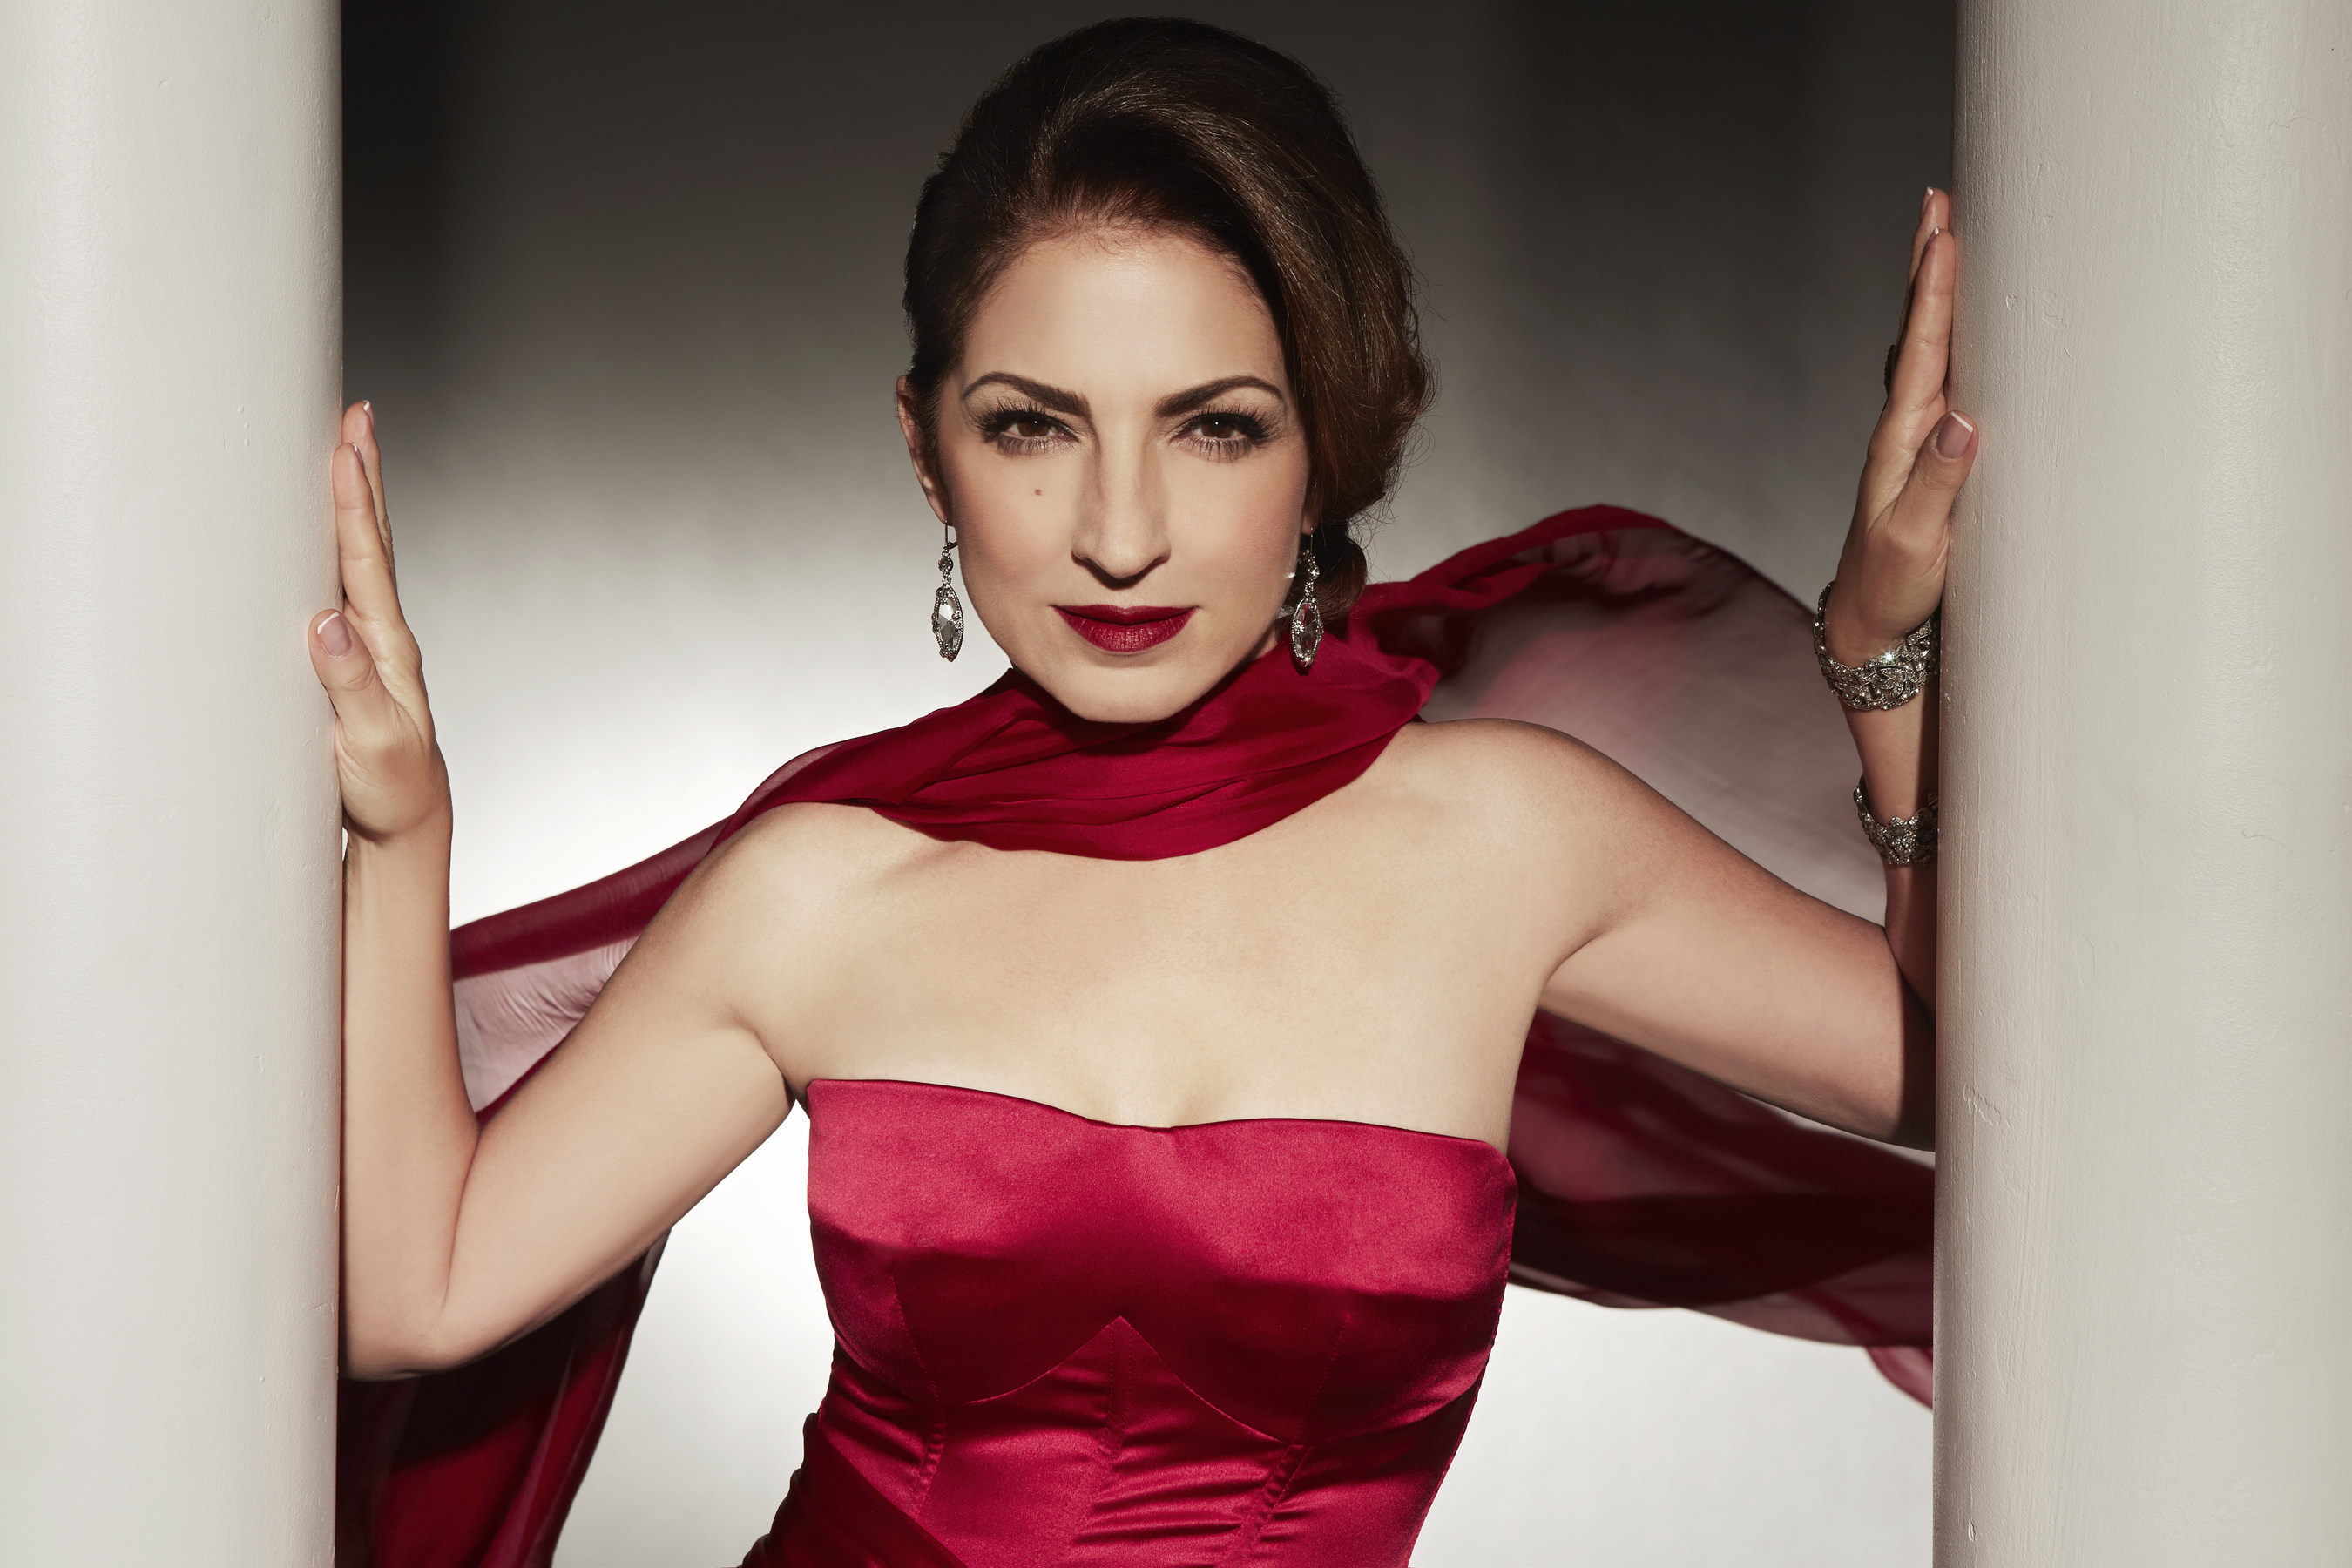 Seven-time Grammy Award-winner and international superstar Gloria Estefanwill perform on PBS' NATIONAL MEMORIAL DAY CONCERT broadcast live from theWest Lawn of the U.S. Capitol on Sunday, May 24, 2015 from 8:00 to 9:30 p.m.ET.